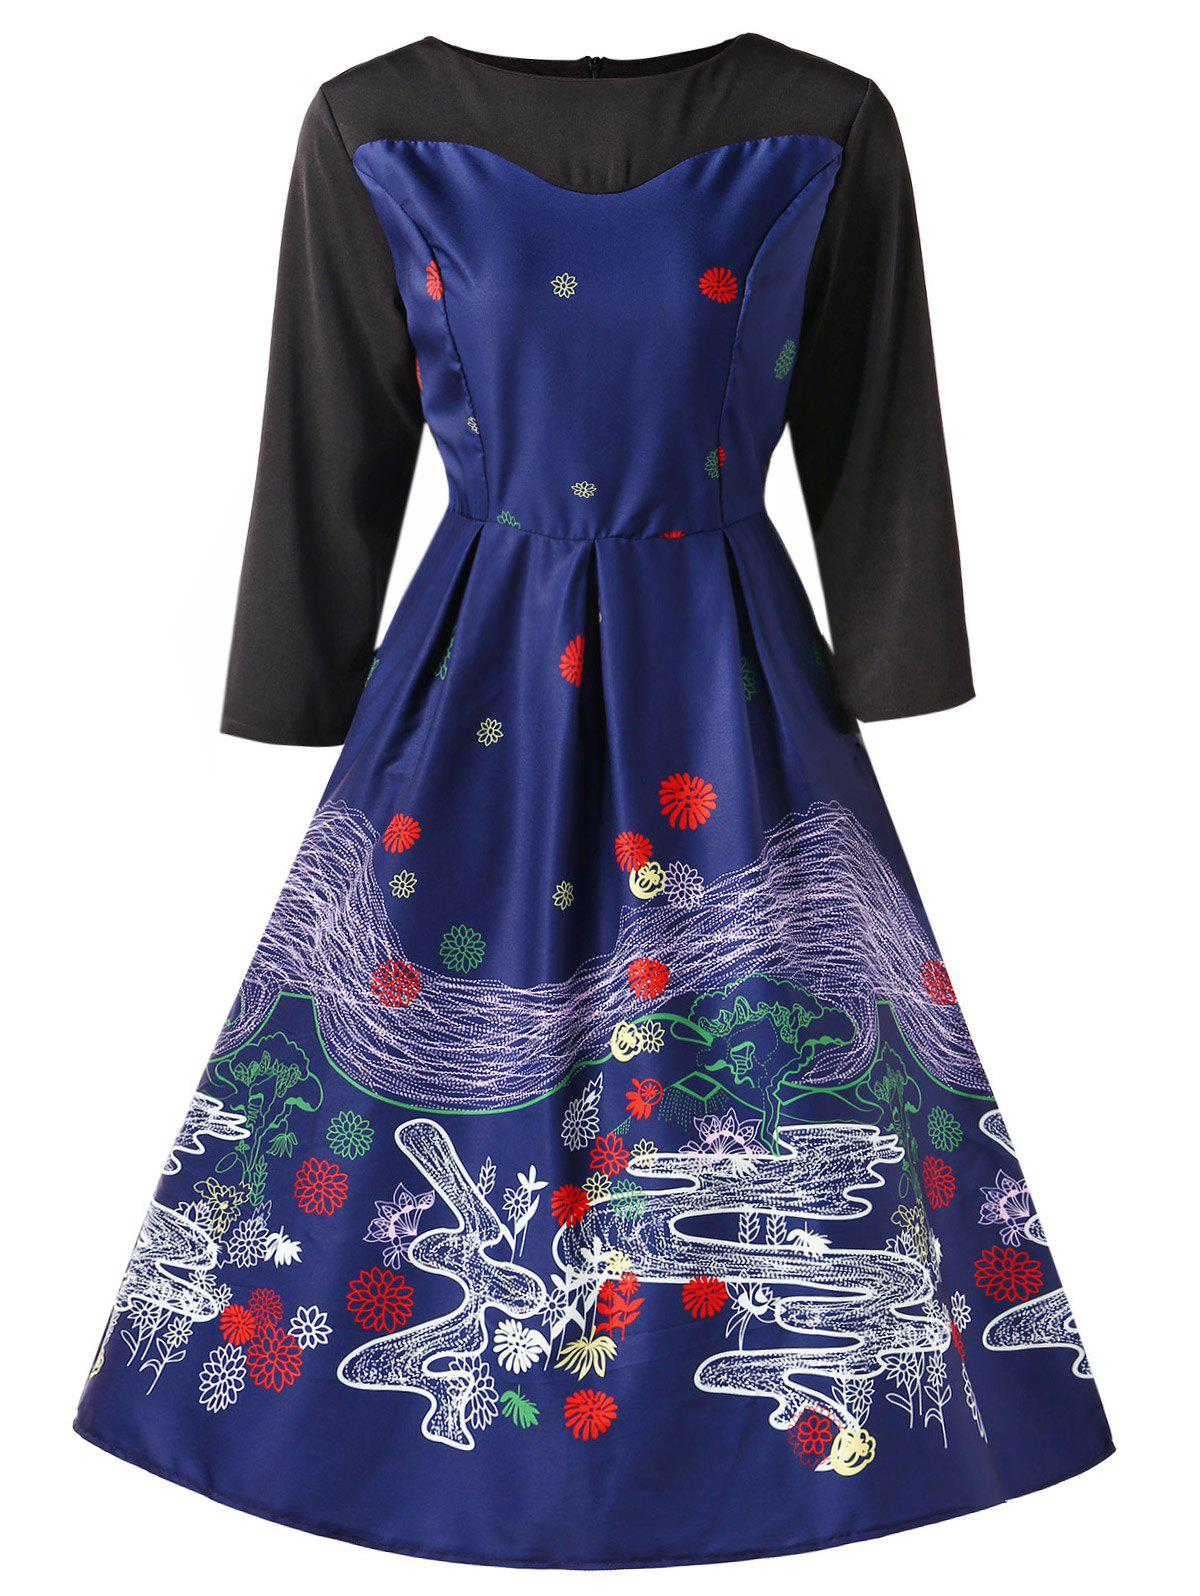 Hot Vintage Printed Pin Up Dress